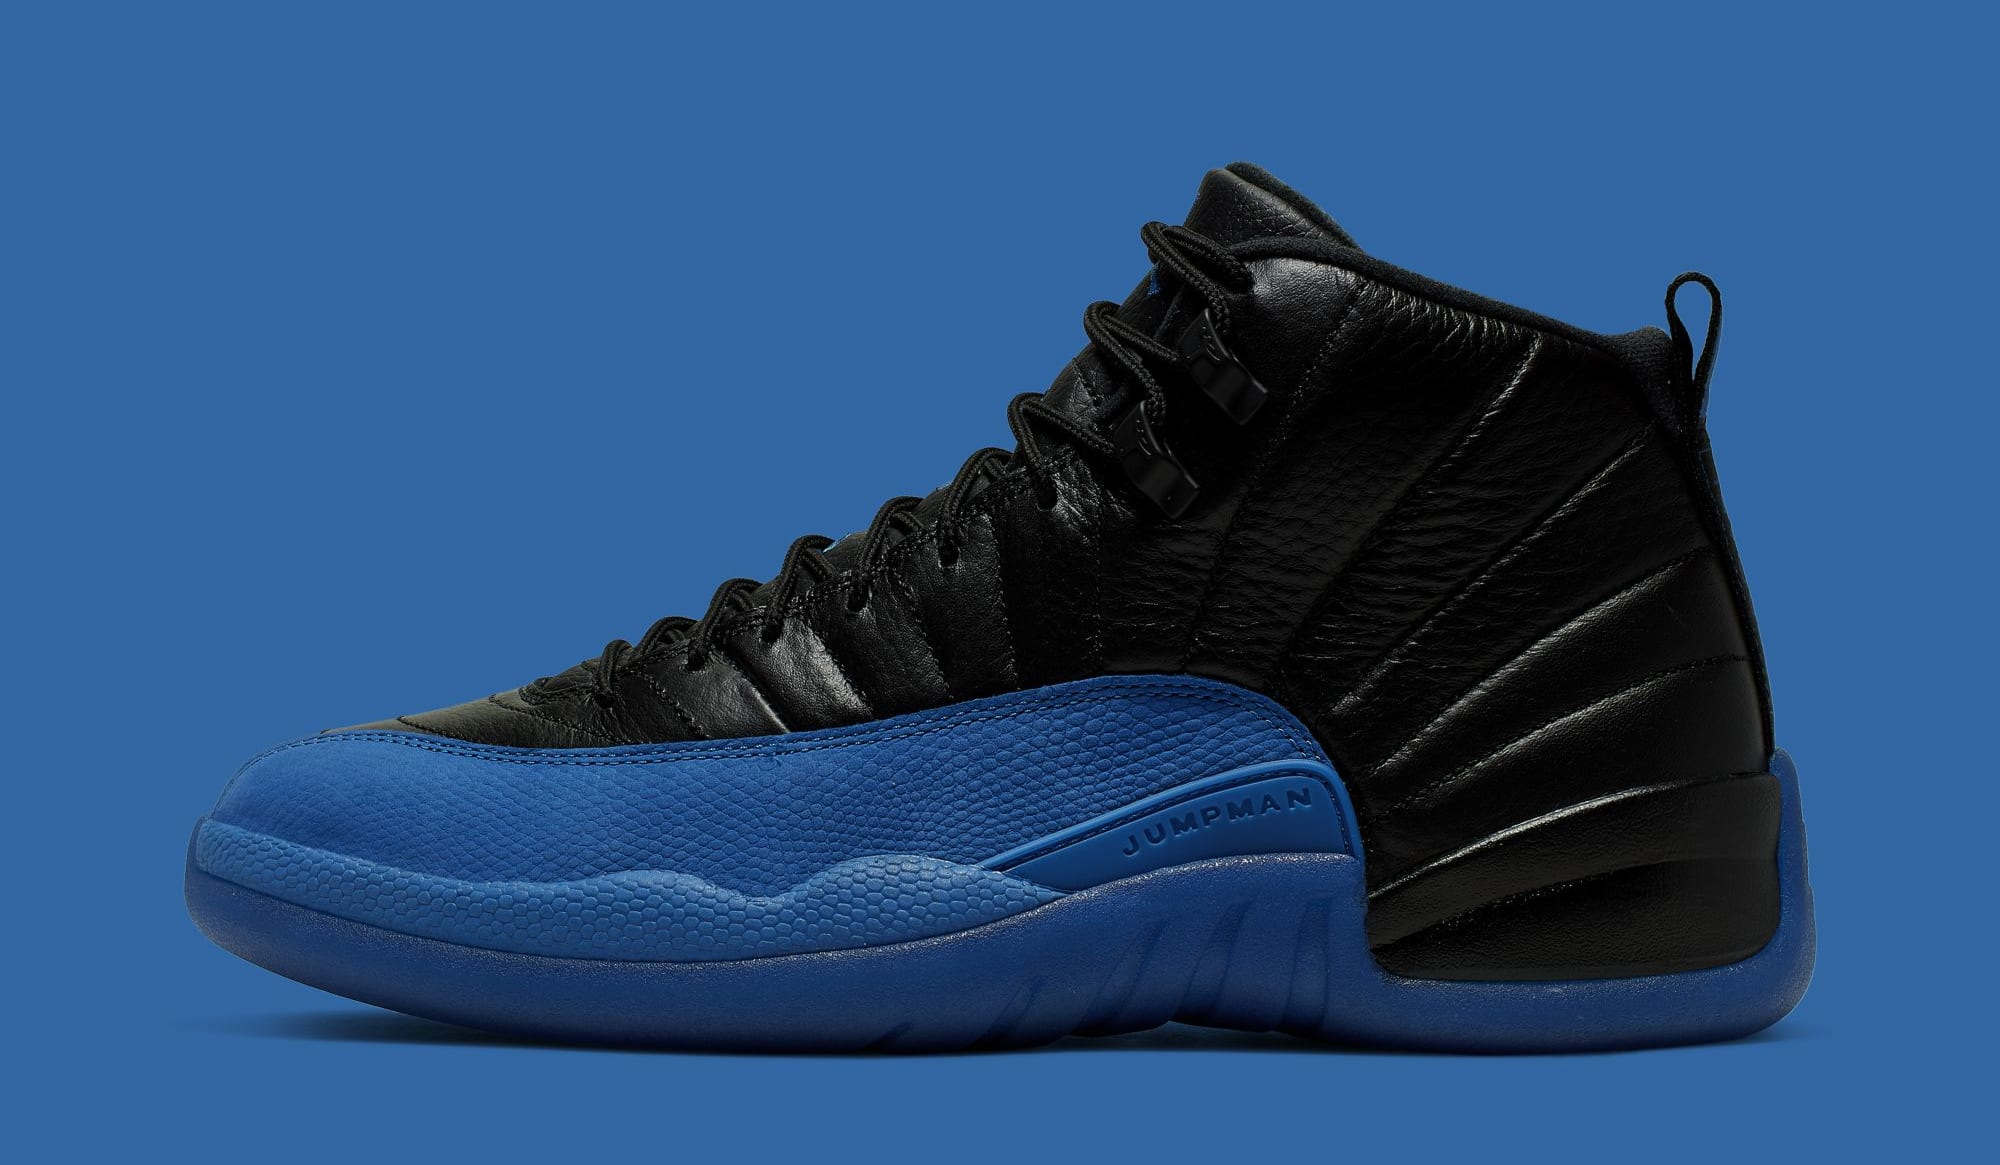 Air Jordan 12 Retro Game Royal Release Date 130690 014 Sole Collector